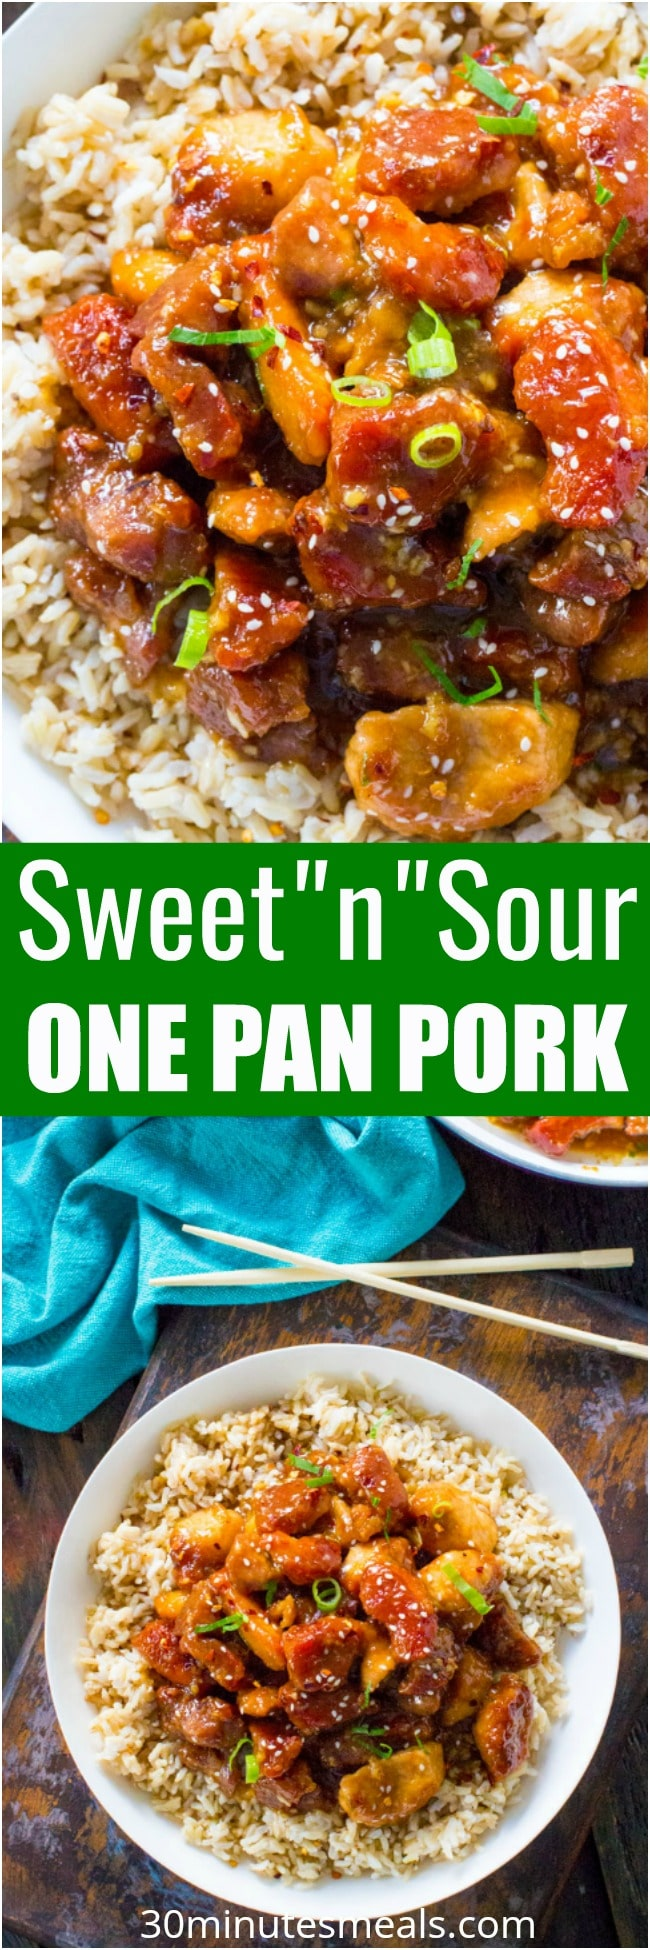 Best Sweet and Sour Pork is a restaurant quality meal that can be easily made at home in one pan. Crispy, sweet, sour and made with budget friendly ingredients.